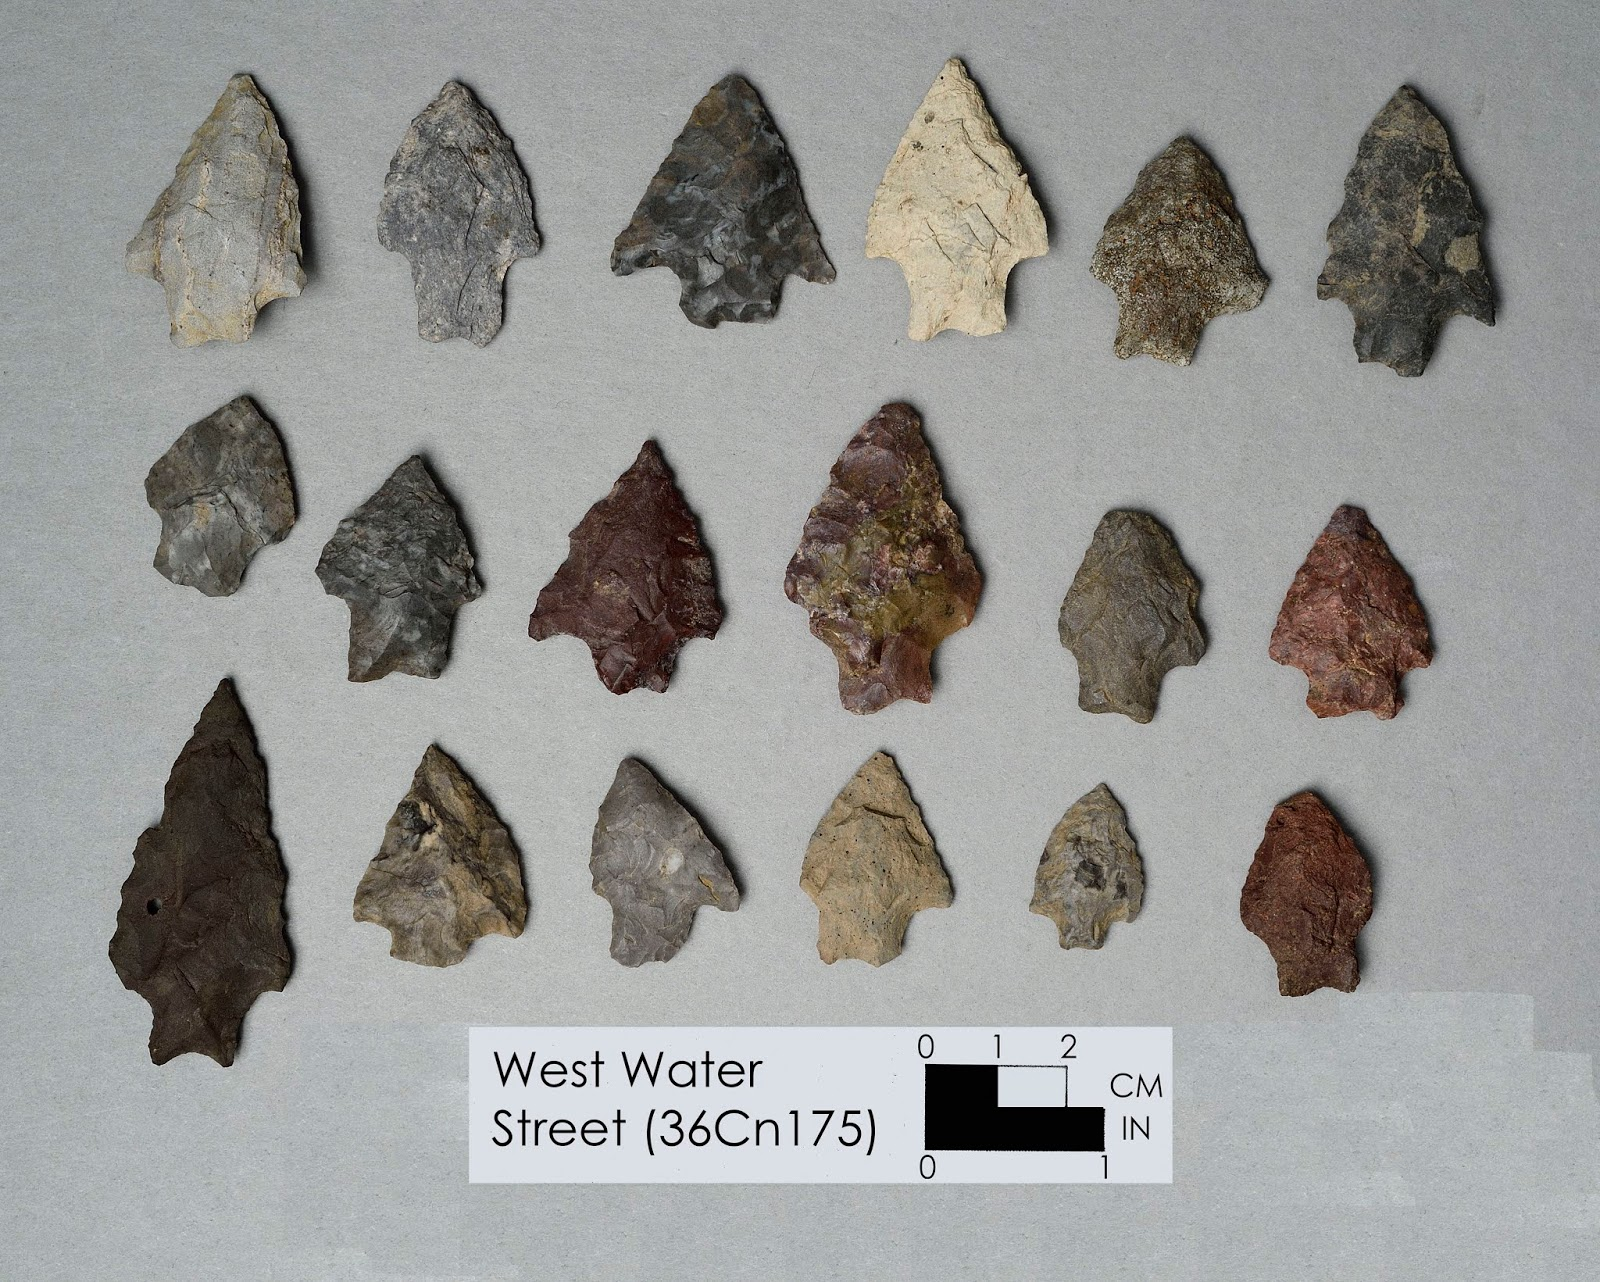 Dating pennsylvania projectile points